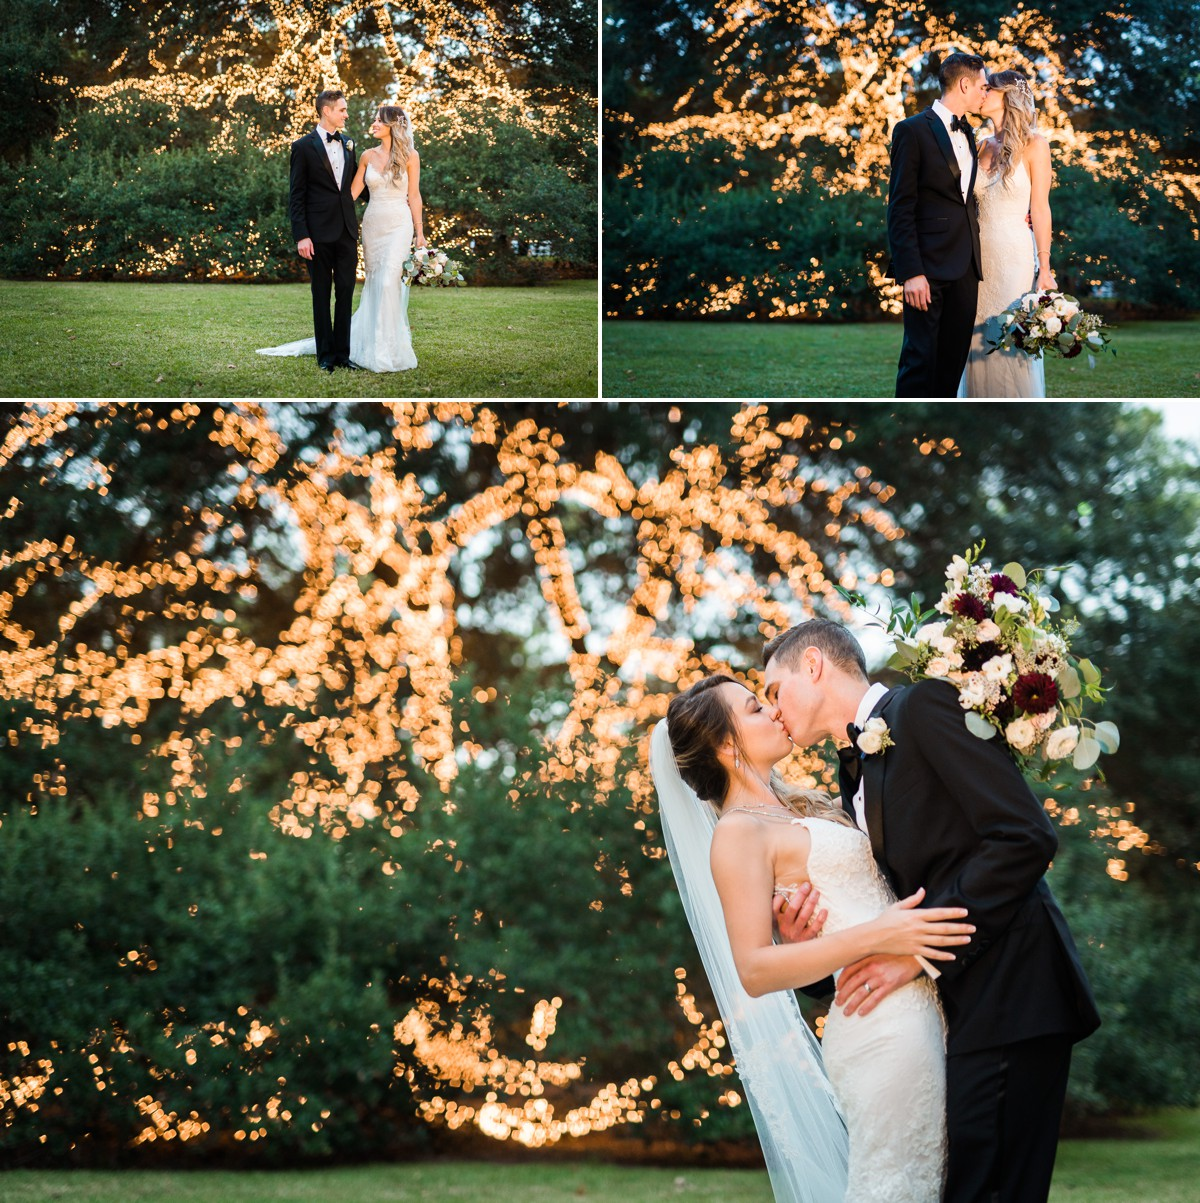 Manor House Wedding at The Houstonian Hotel Night time outdoor Bride and Groom